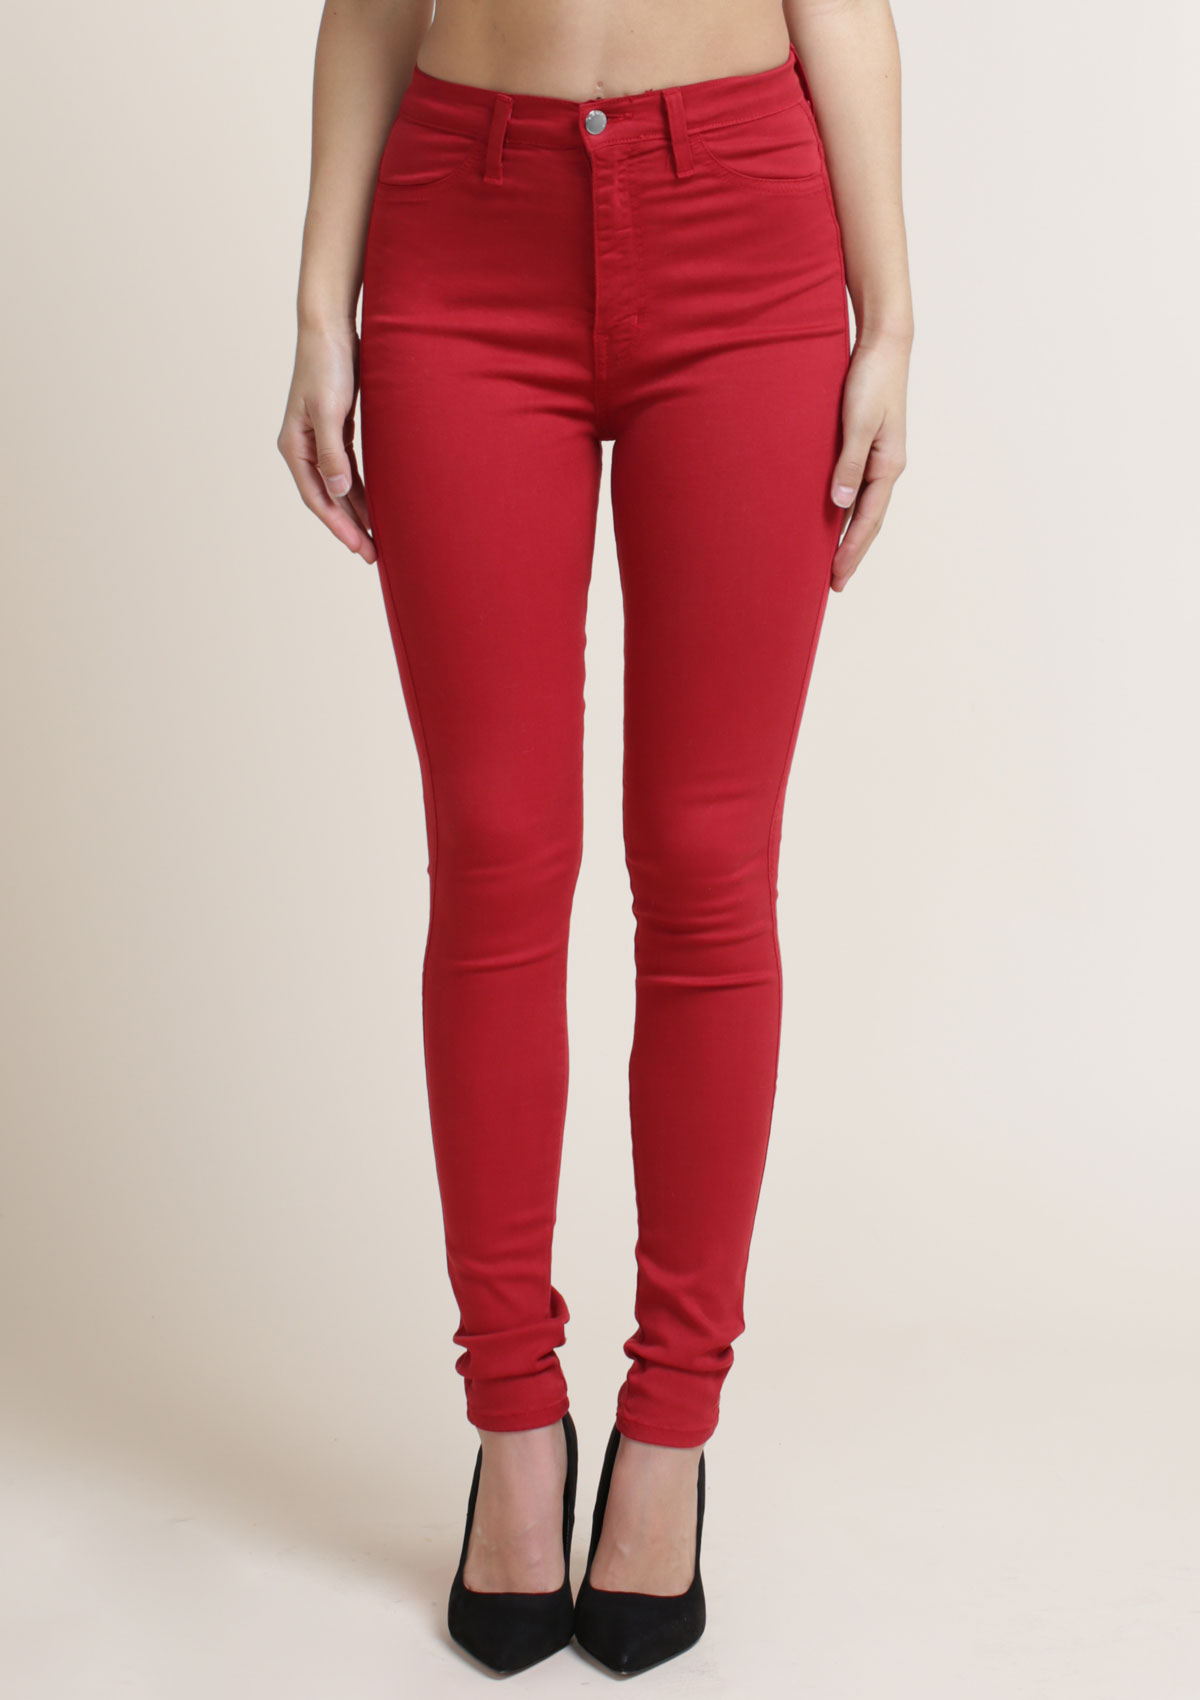 Berry Skinny Jeans